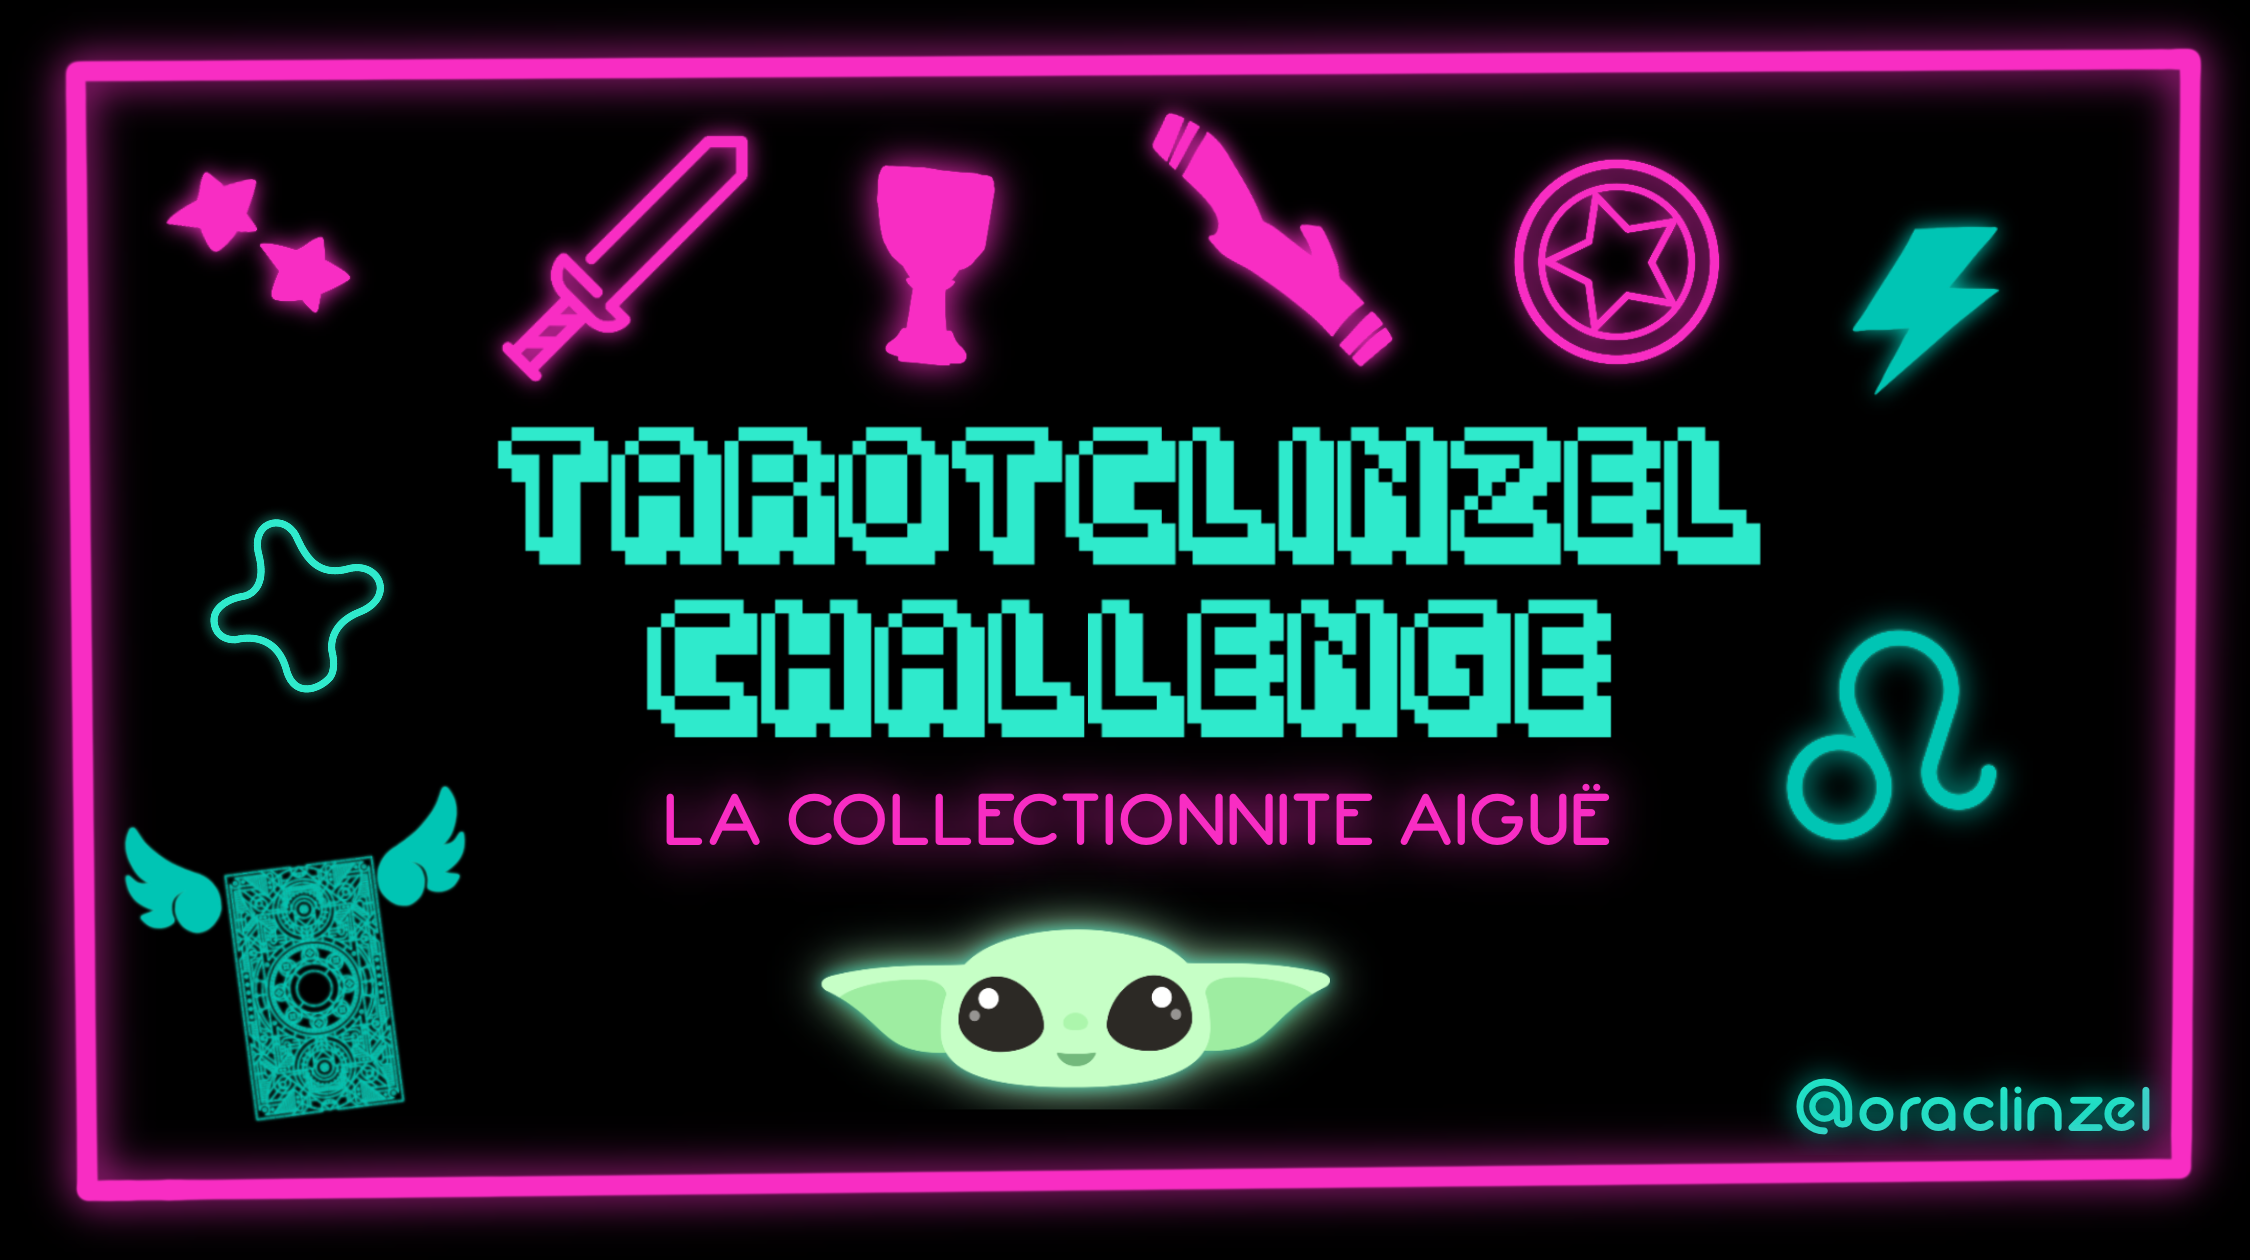 👾 TAROTCLINZELCHALLENGE 👾 La Collectionnite Aiguë 🃏 Édition spéciale collection de tarots